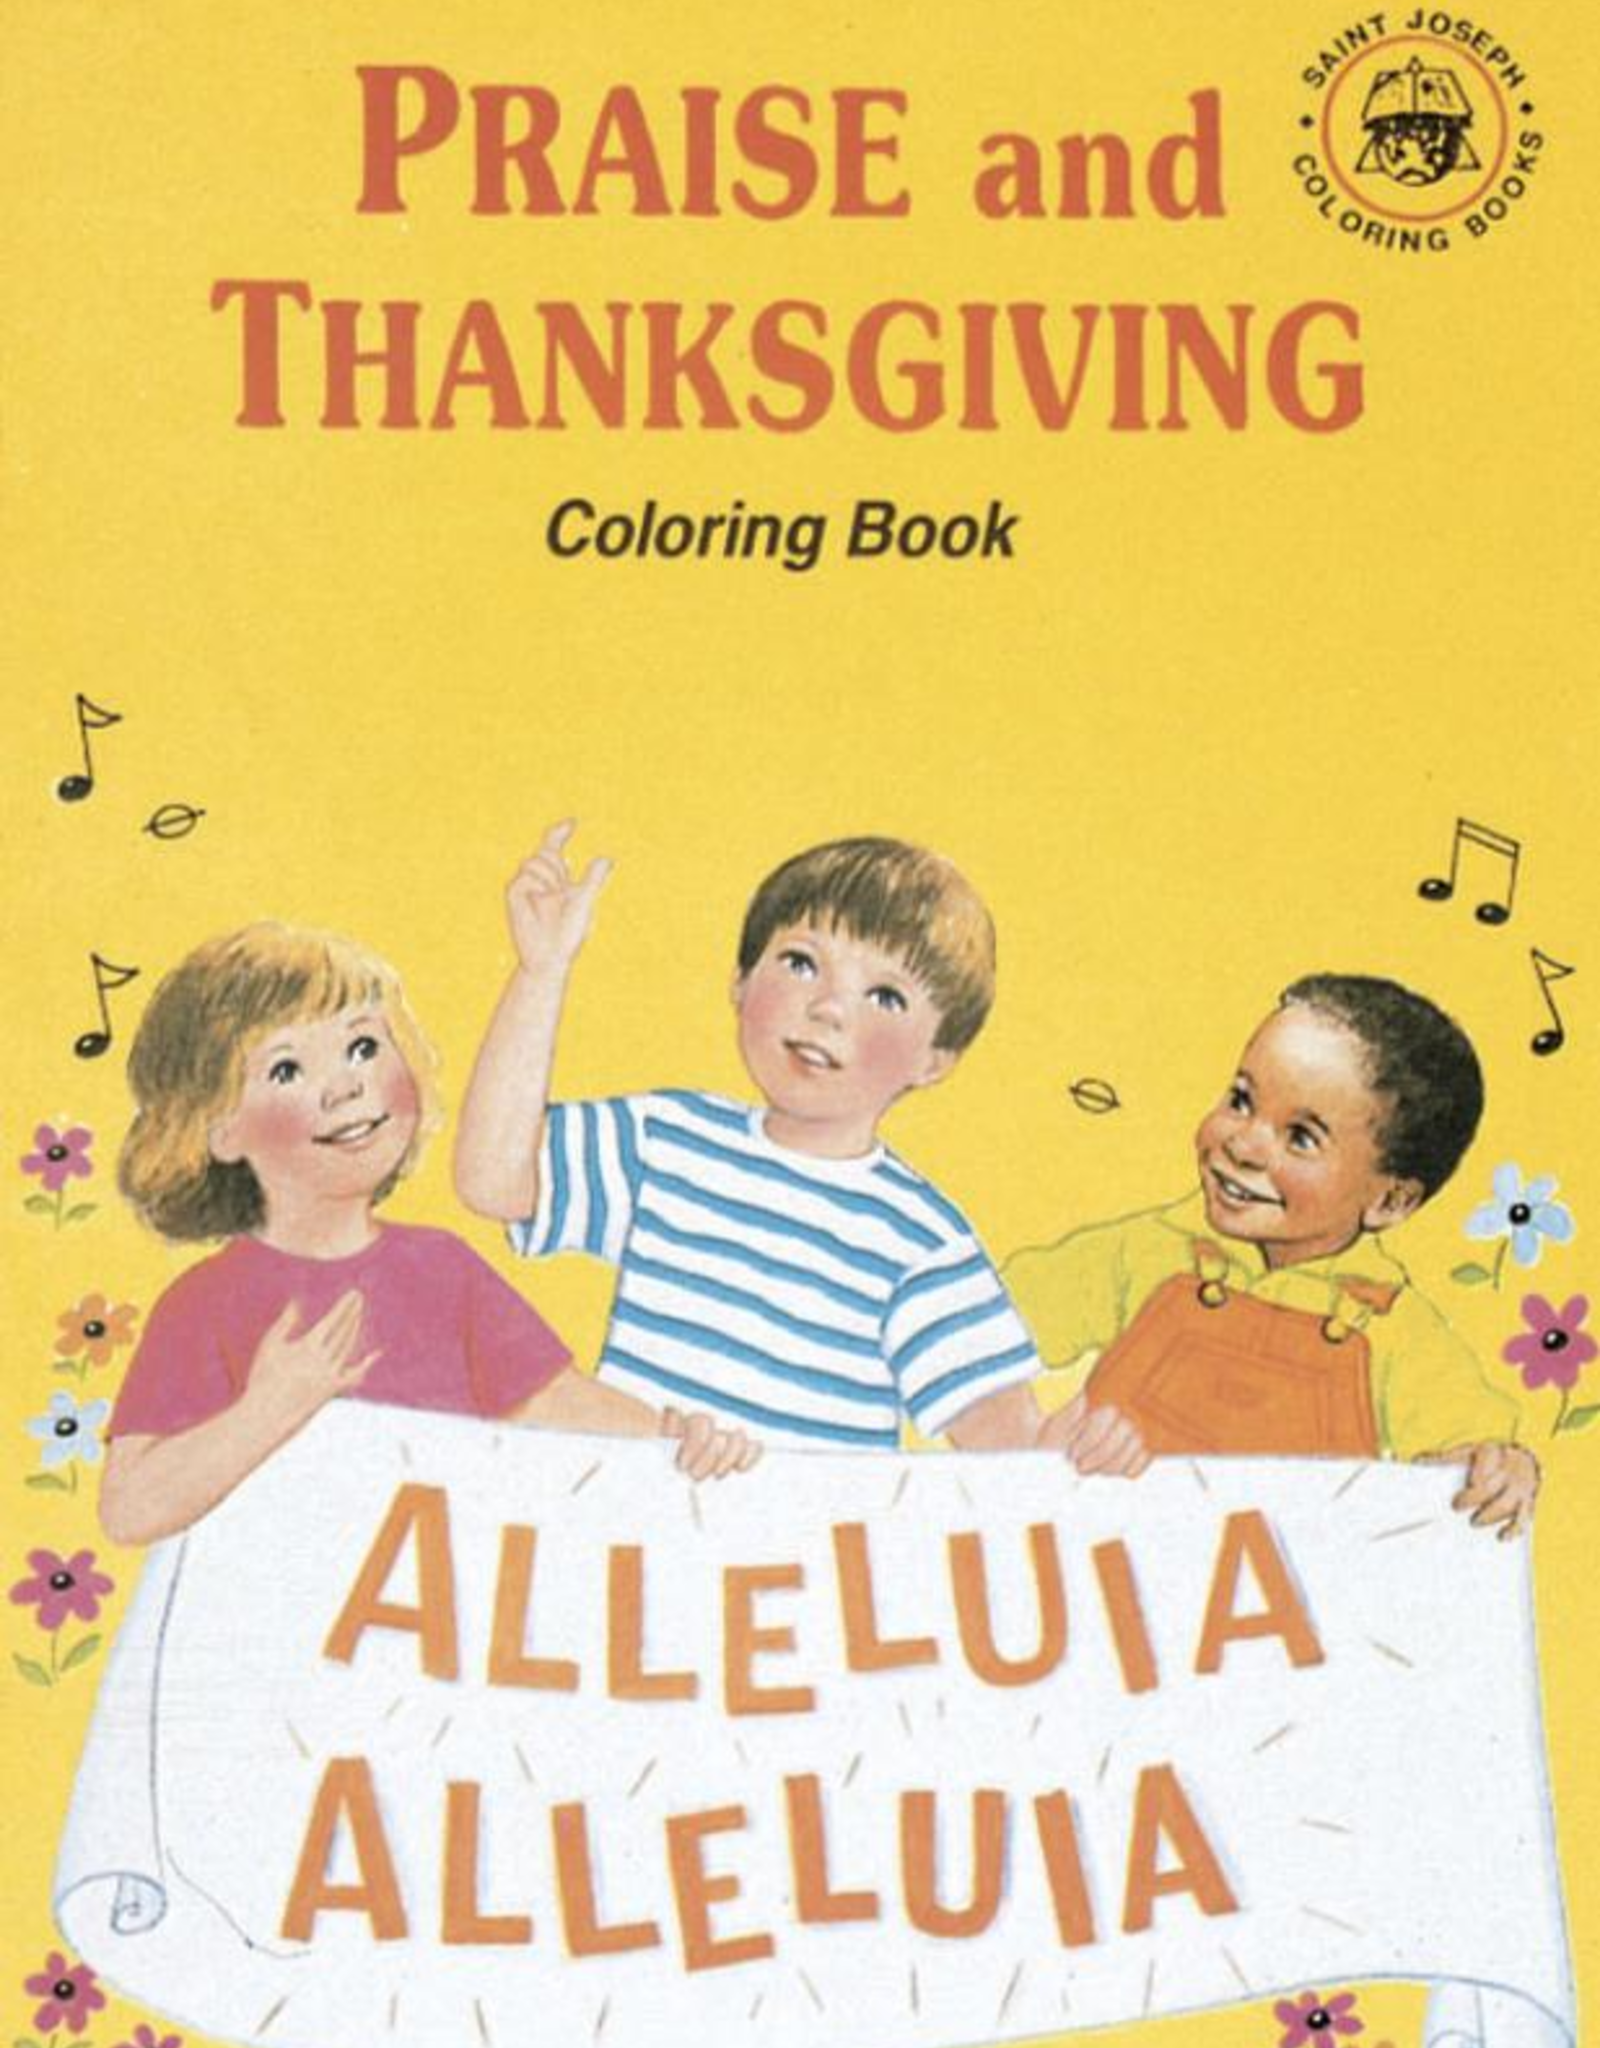 Catholic Book Publishing Coloring Book About Praise and Thanksgiving, by Emma C. Mickean (paperback)